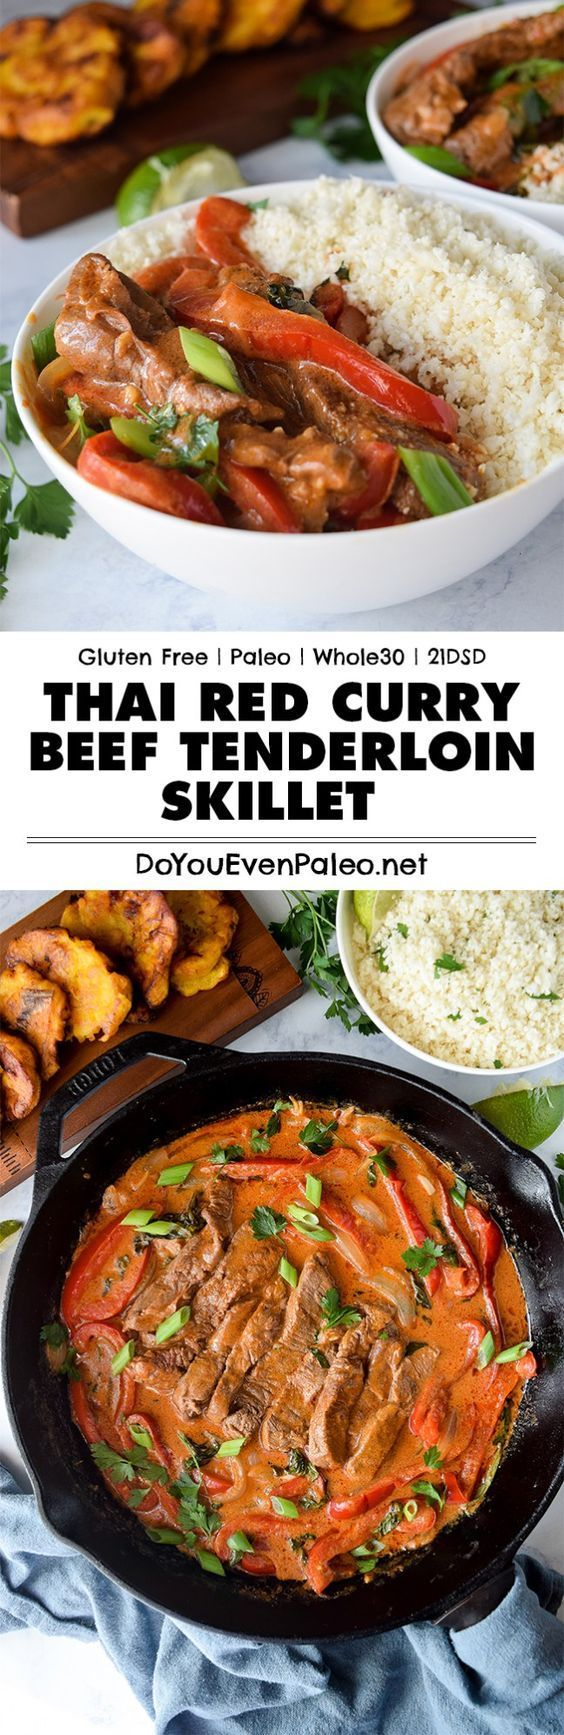 This quick Thai Red Curry Beef Tenderloin Skillet makes a spicy little weeknight dinner. Plus, it's gluten free, paleo, Whole30, and 21DSD friendly! | http://DoYouEvenPaleo.net